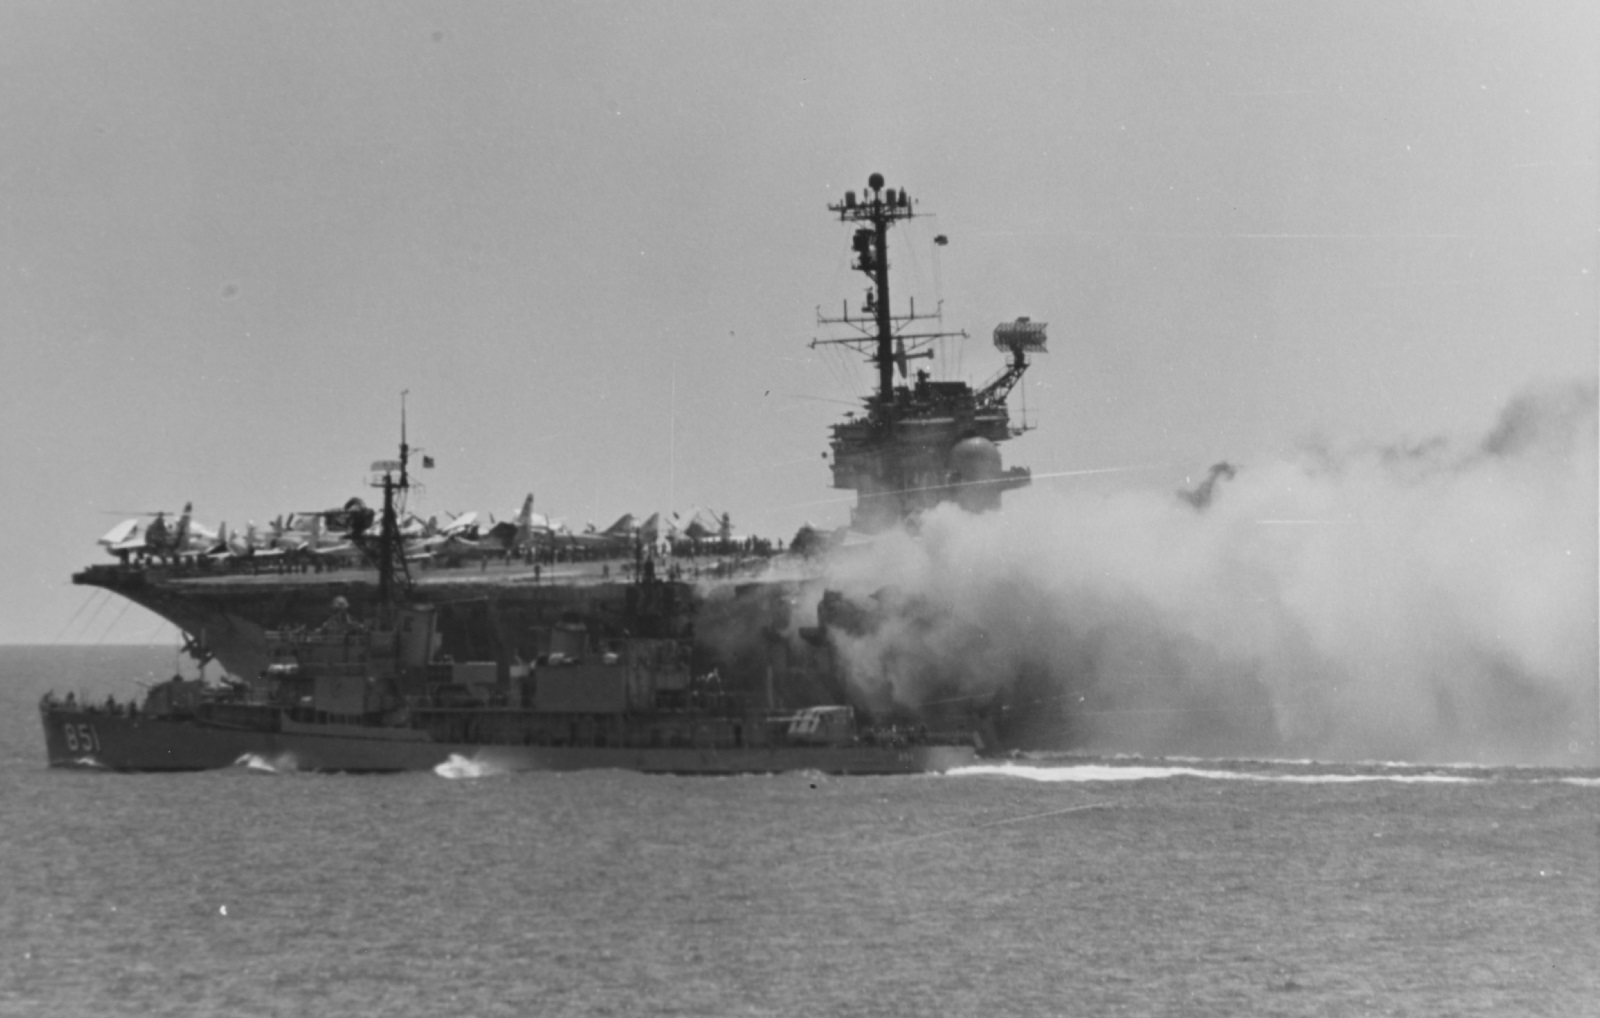 A Rocket Exploded and Almost Sunk a U.S. Navy Aircraft Carrier